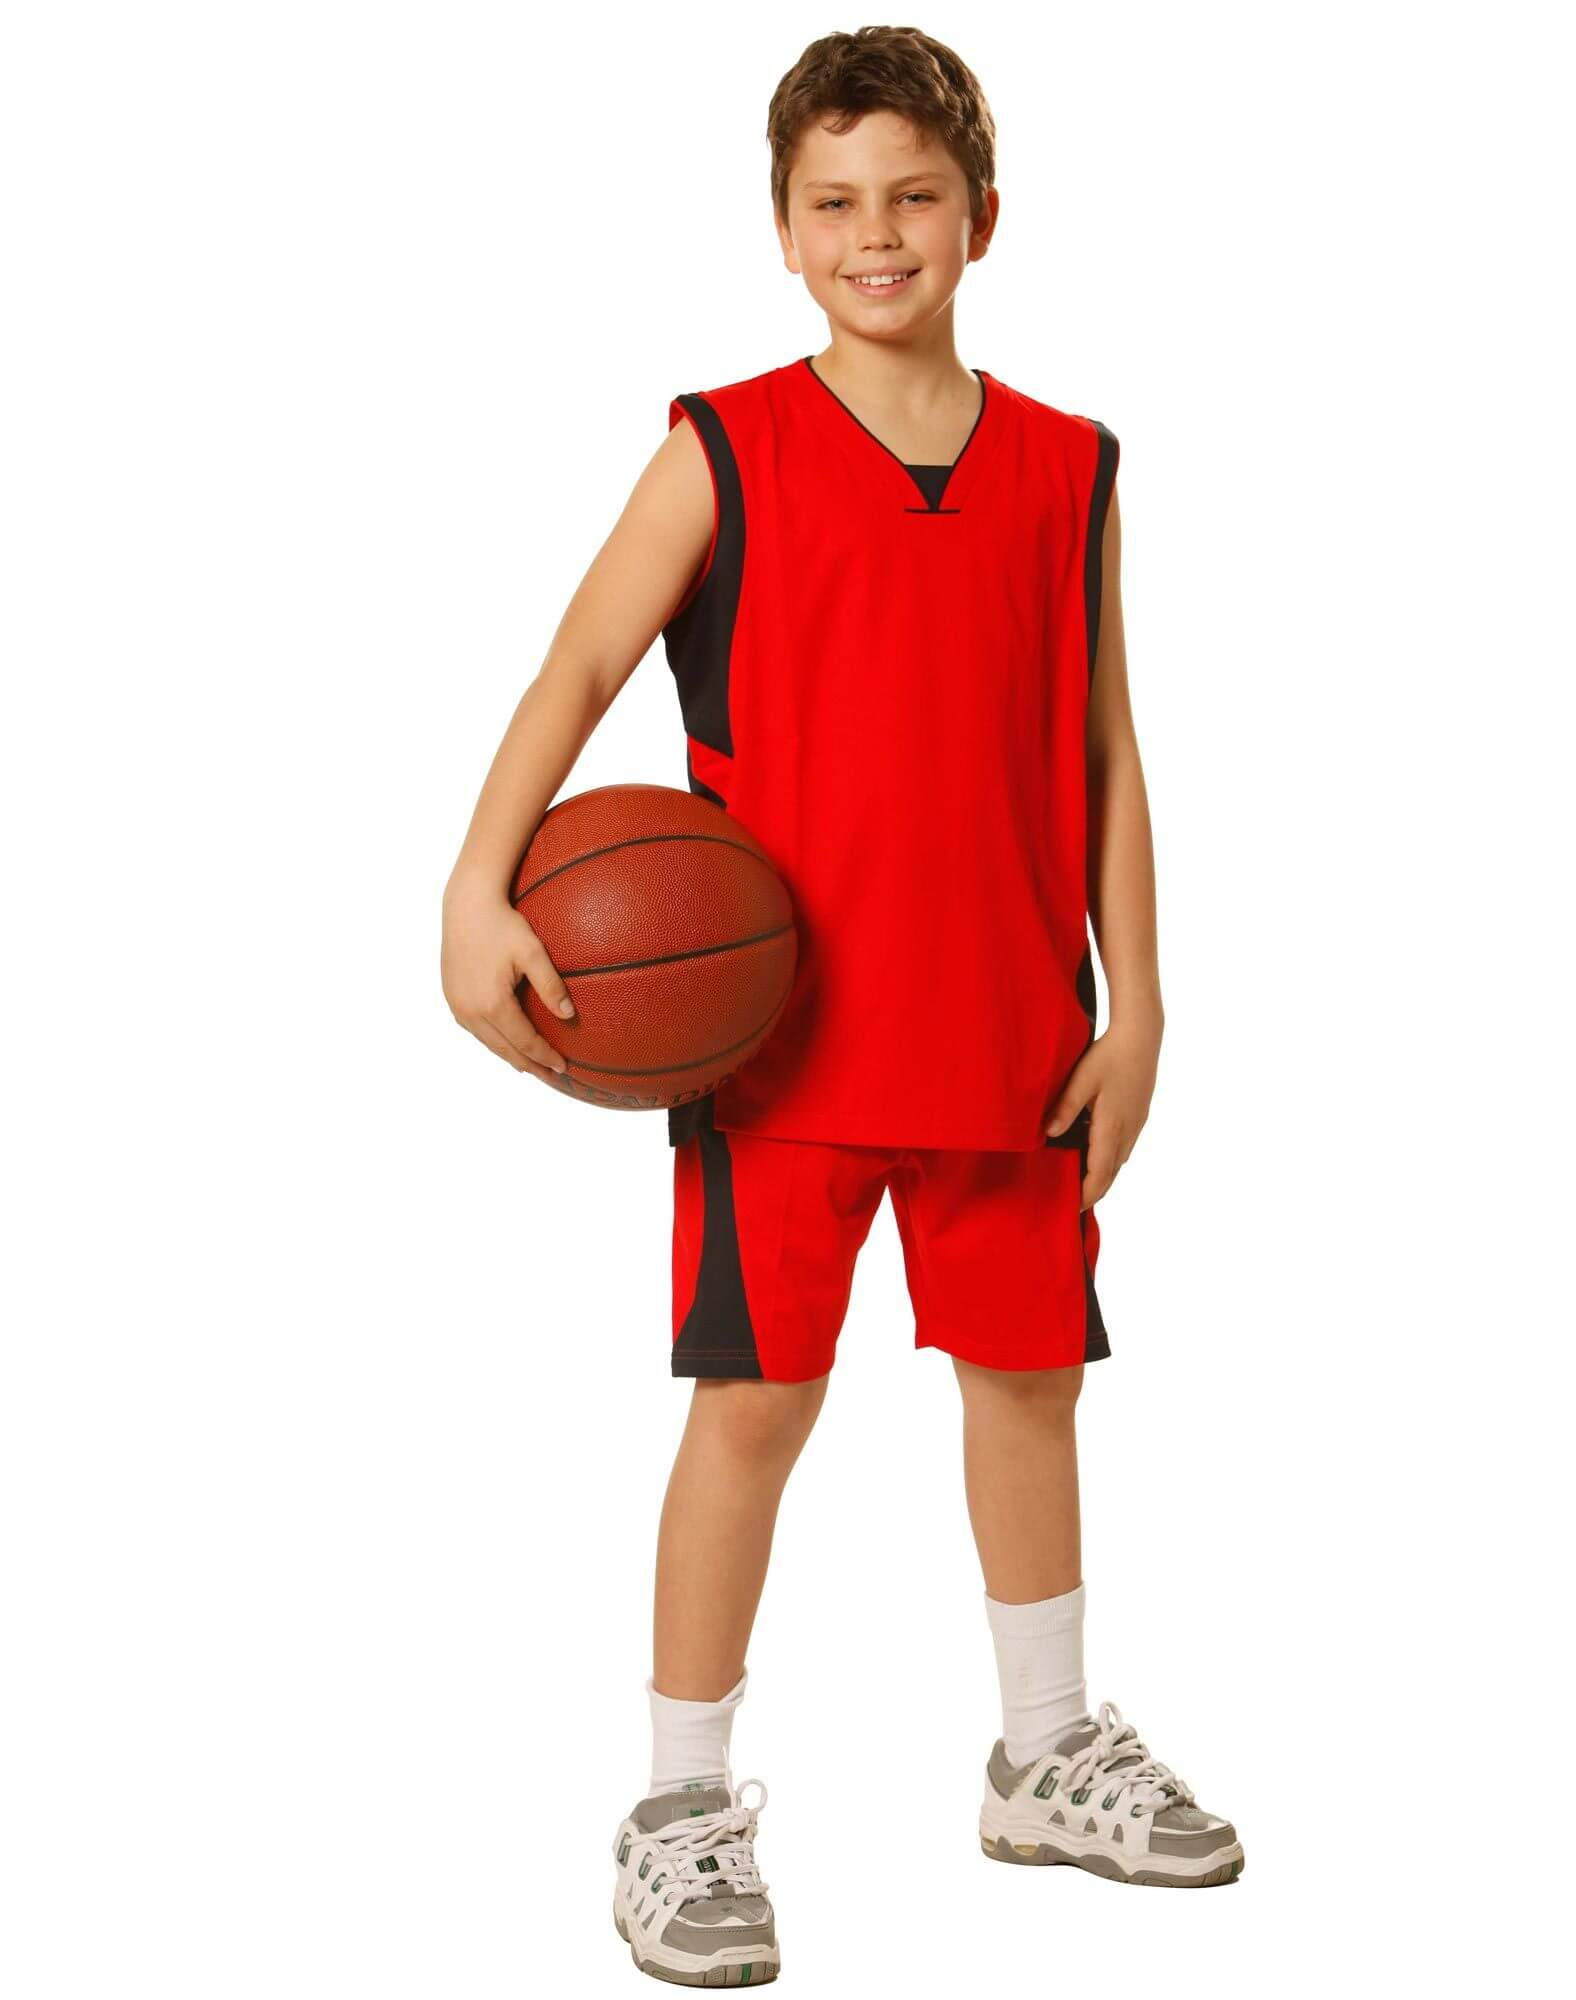 Kids Basketball Jerseys Manufacturers in Pune